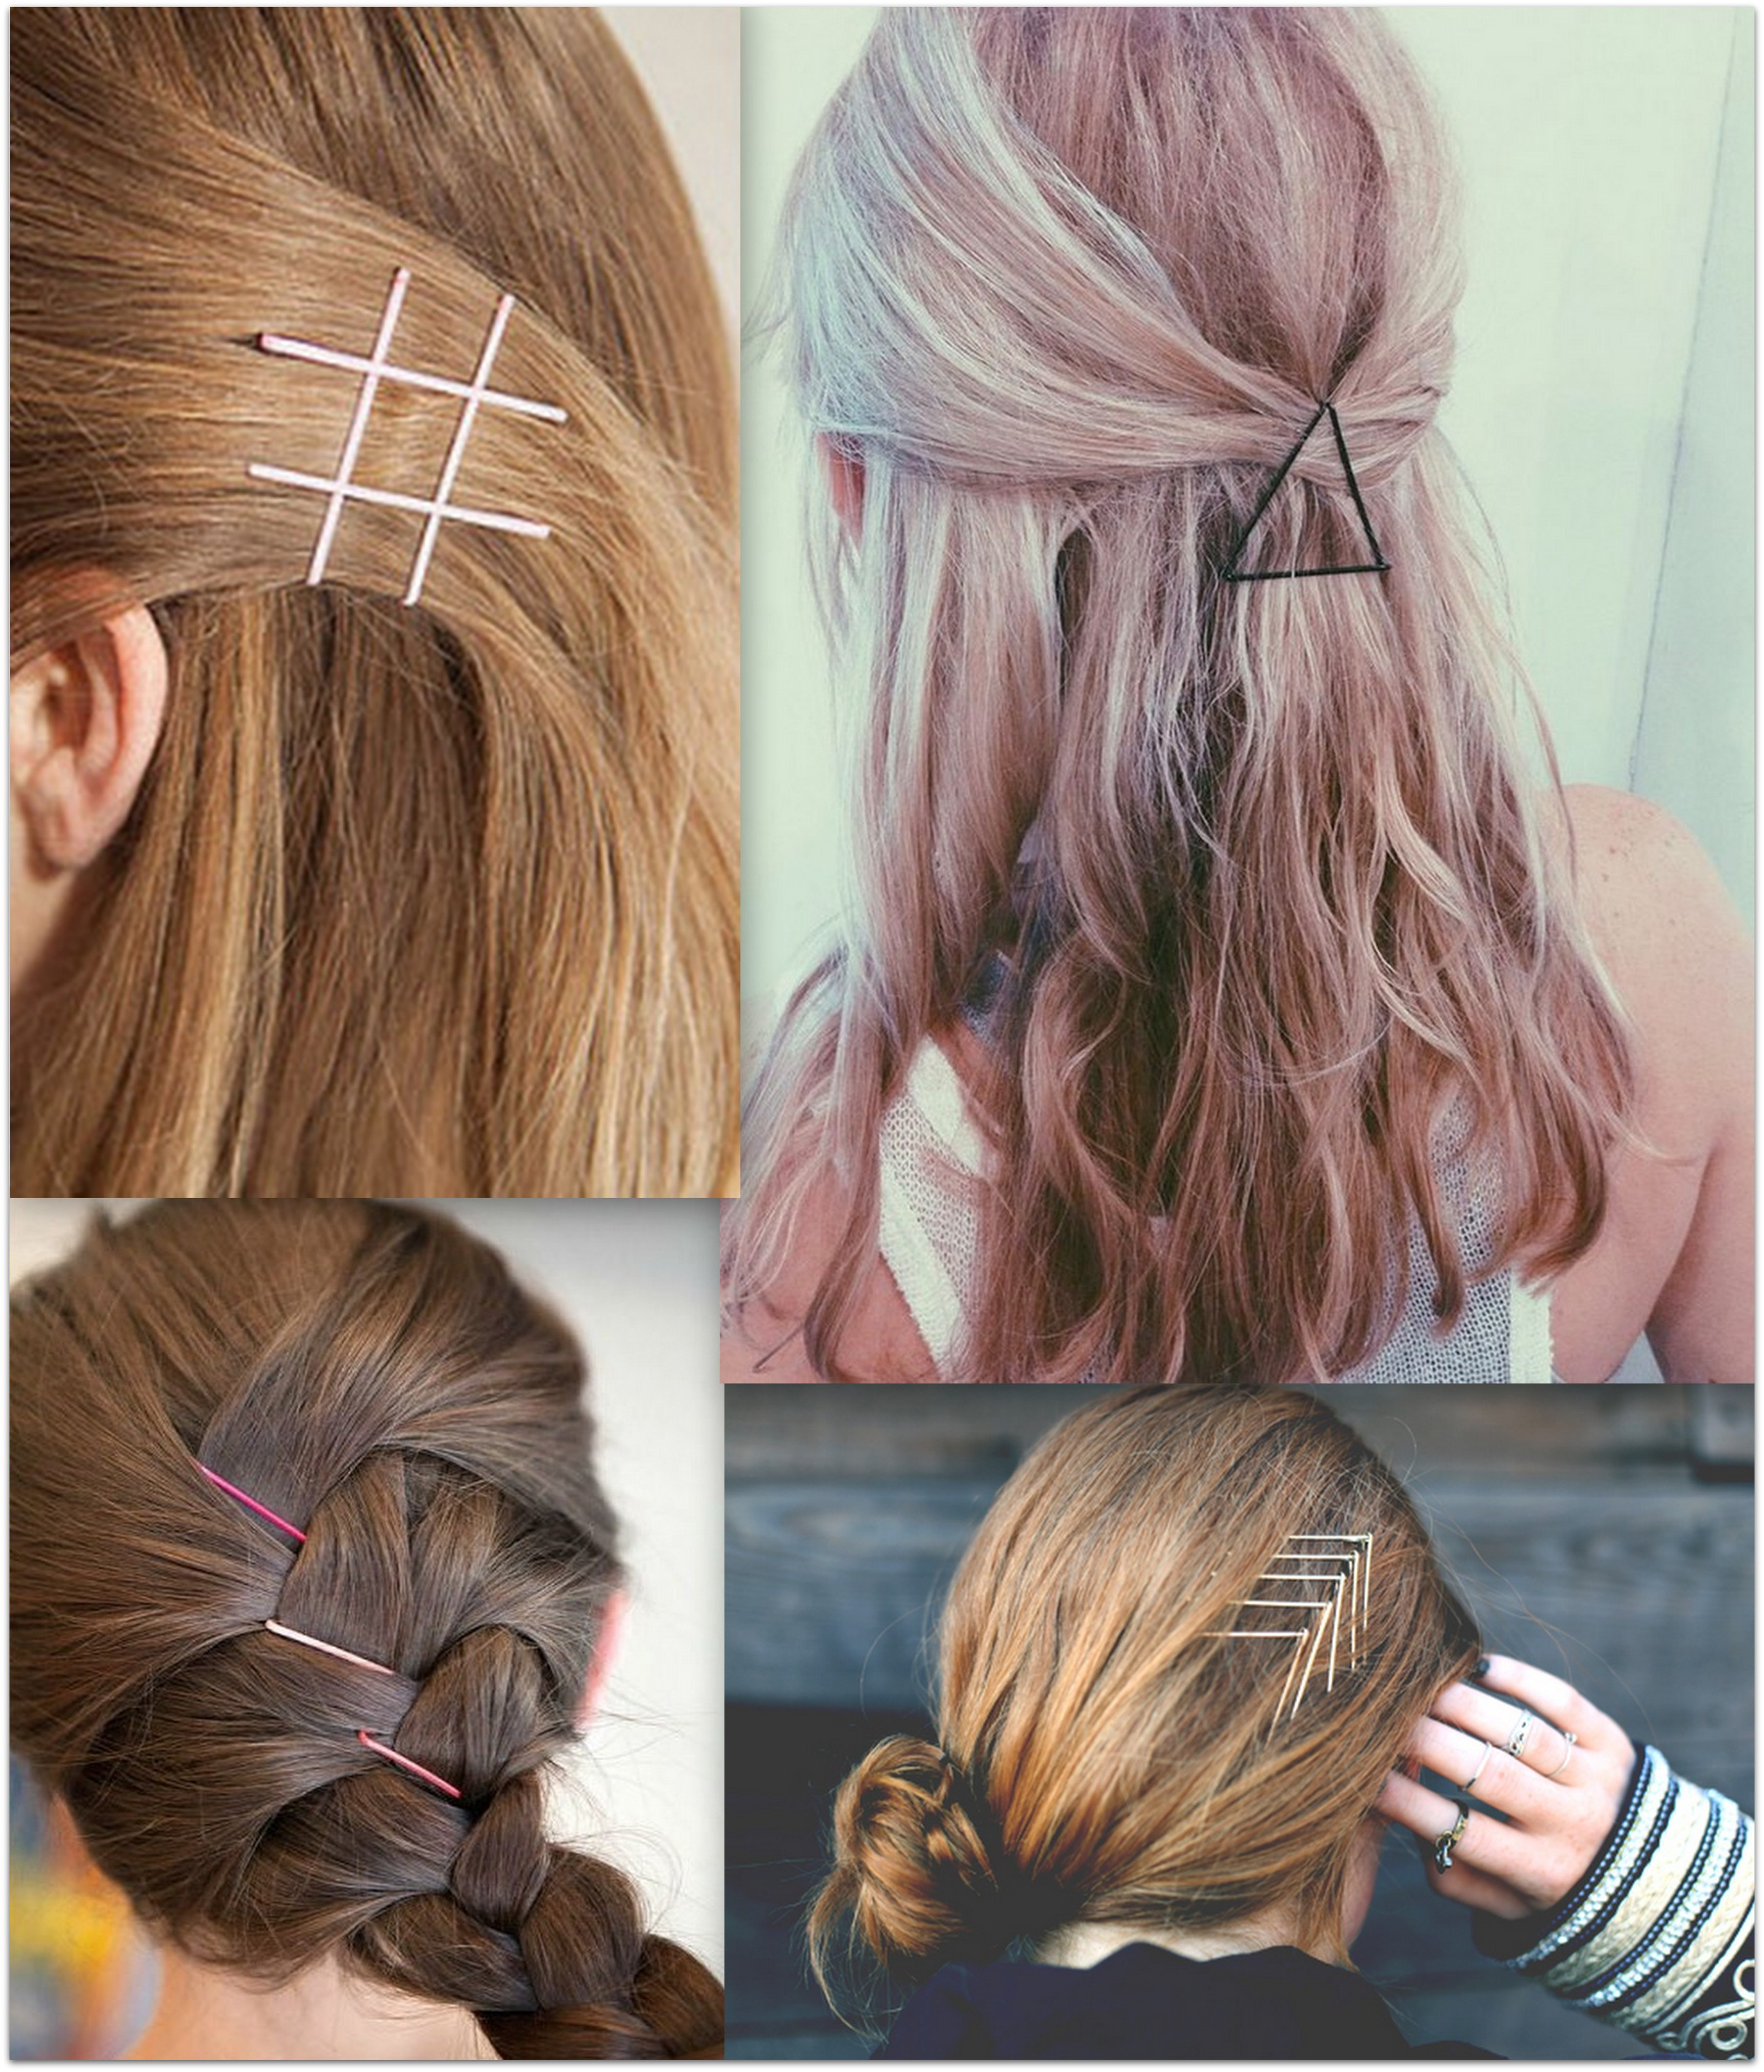 31 Stupidly Simple Hair Hacks That Will Transform Your Hair Forever